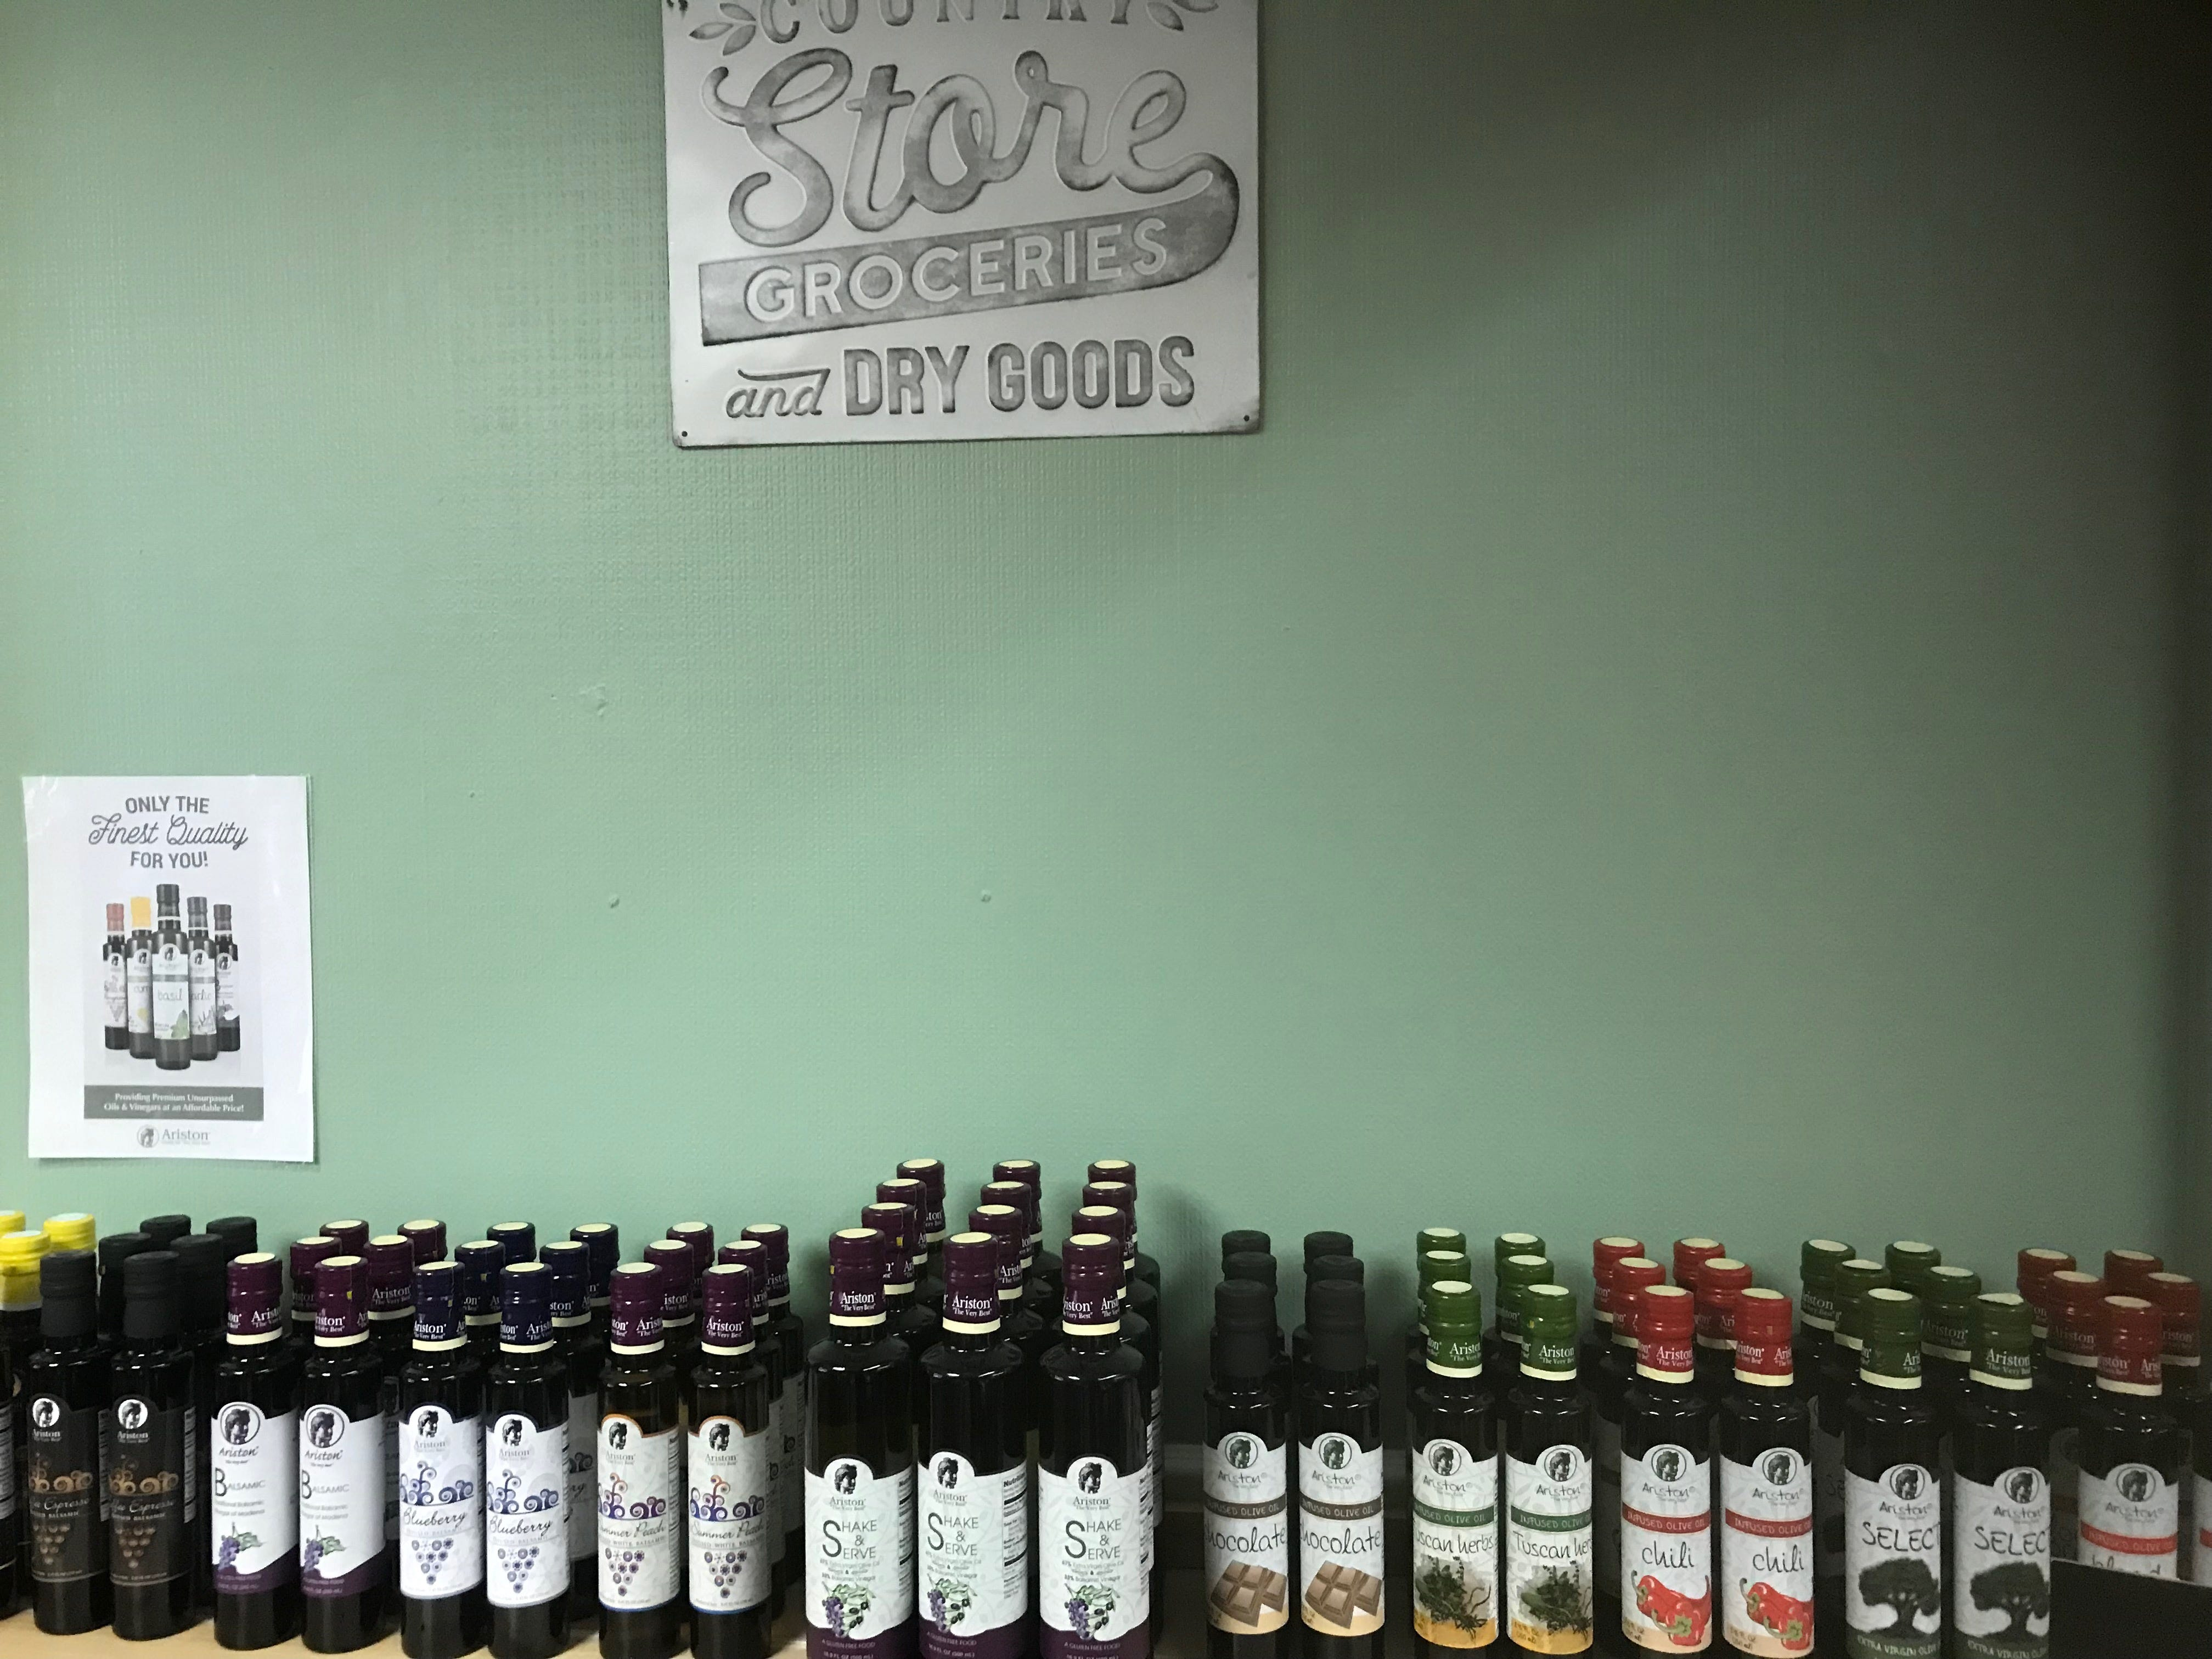 Bottles of gourmet olive oil and balsamic vinegar sit on a shelf in Whiteraven's Nest Farm to Table store on Chincoteague Road in Wallops Island, Virginia on Friday, March 8, 2019.